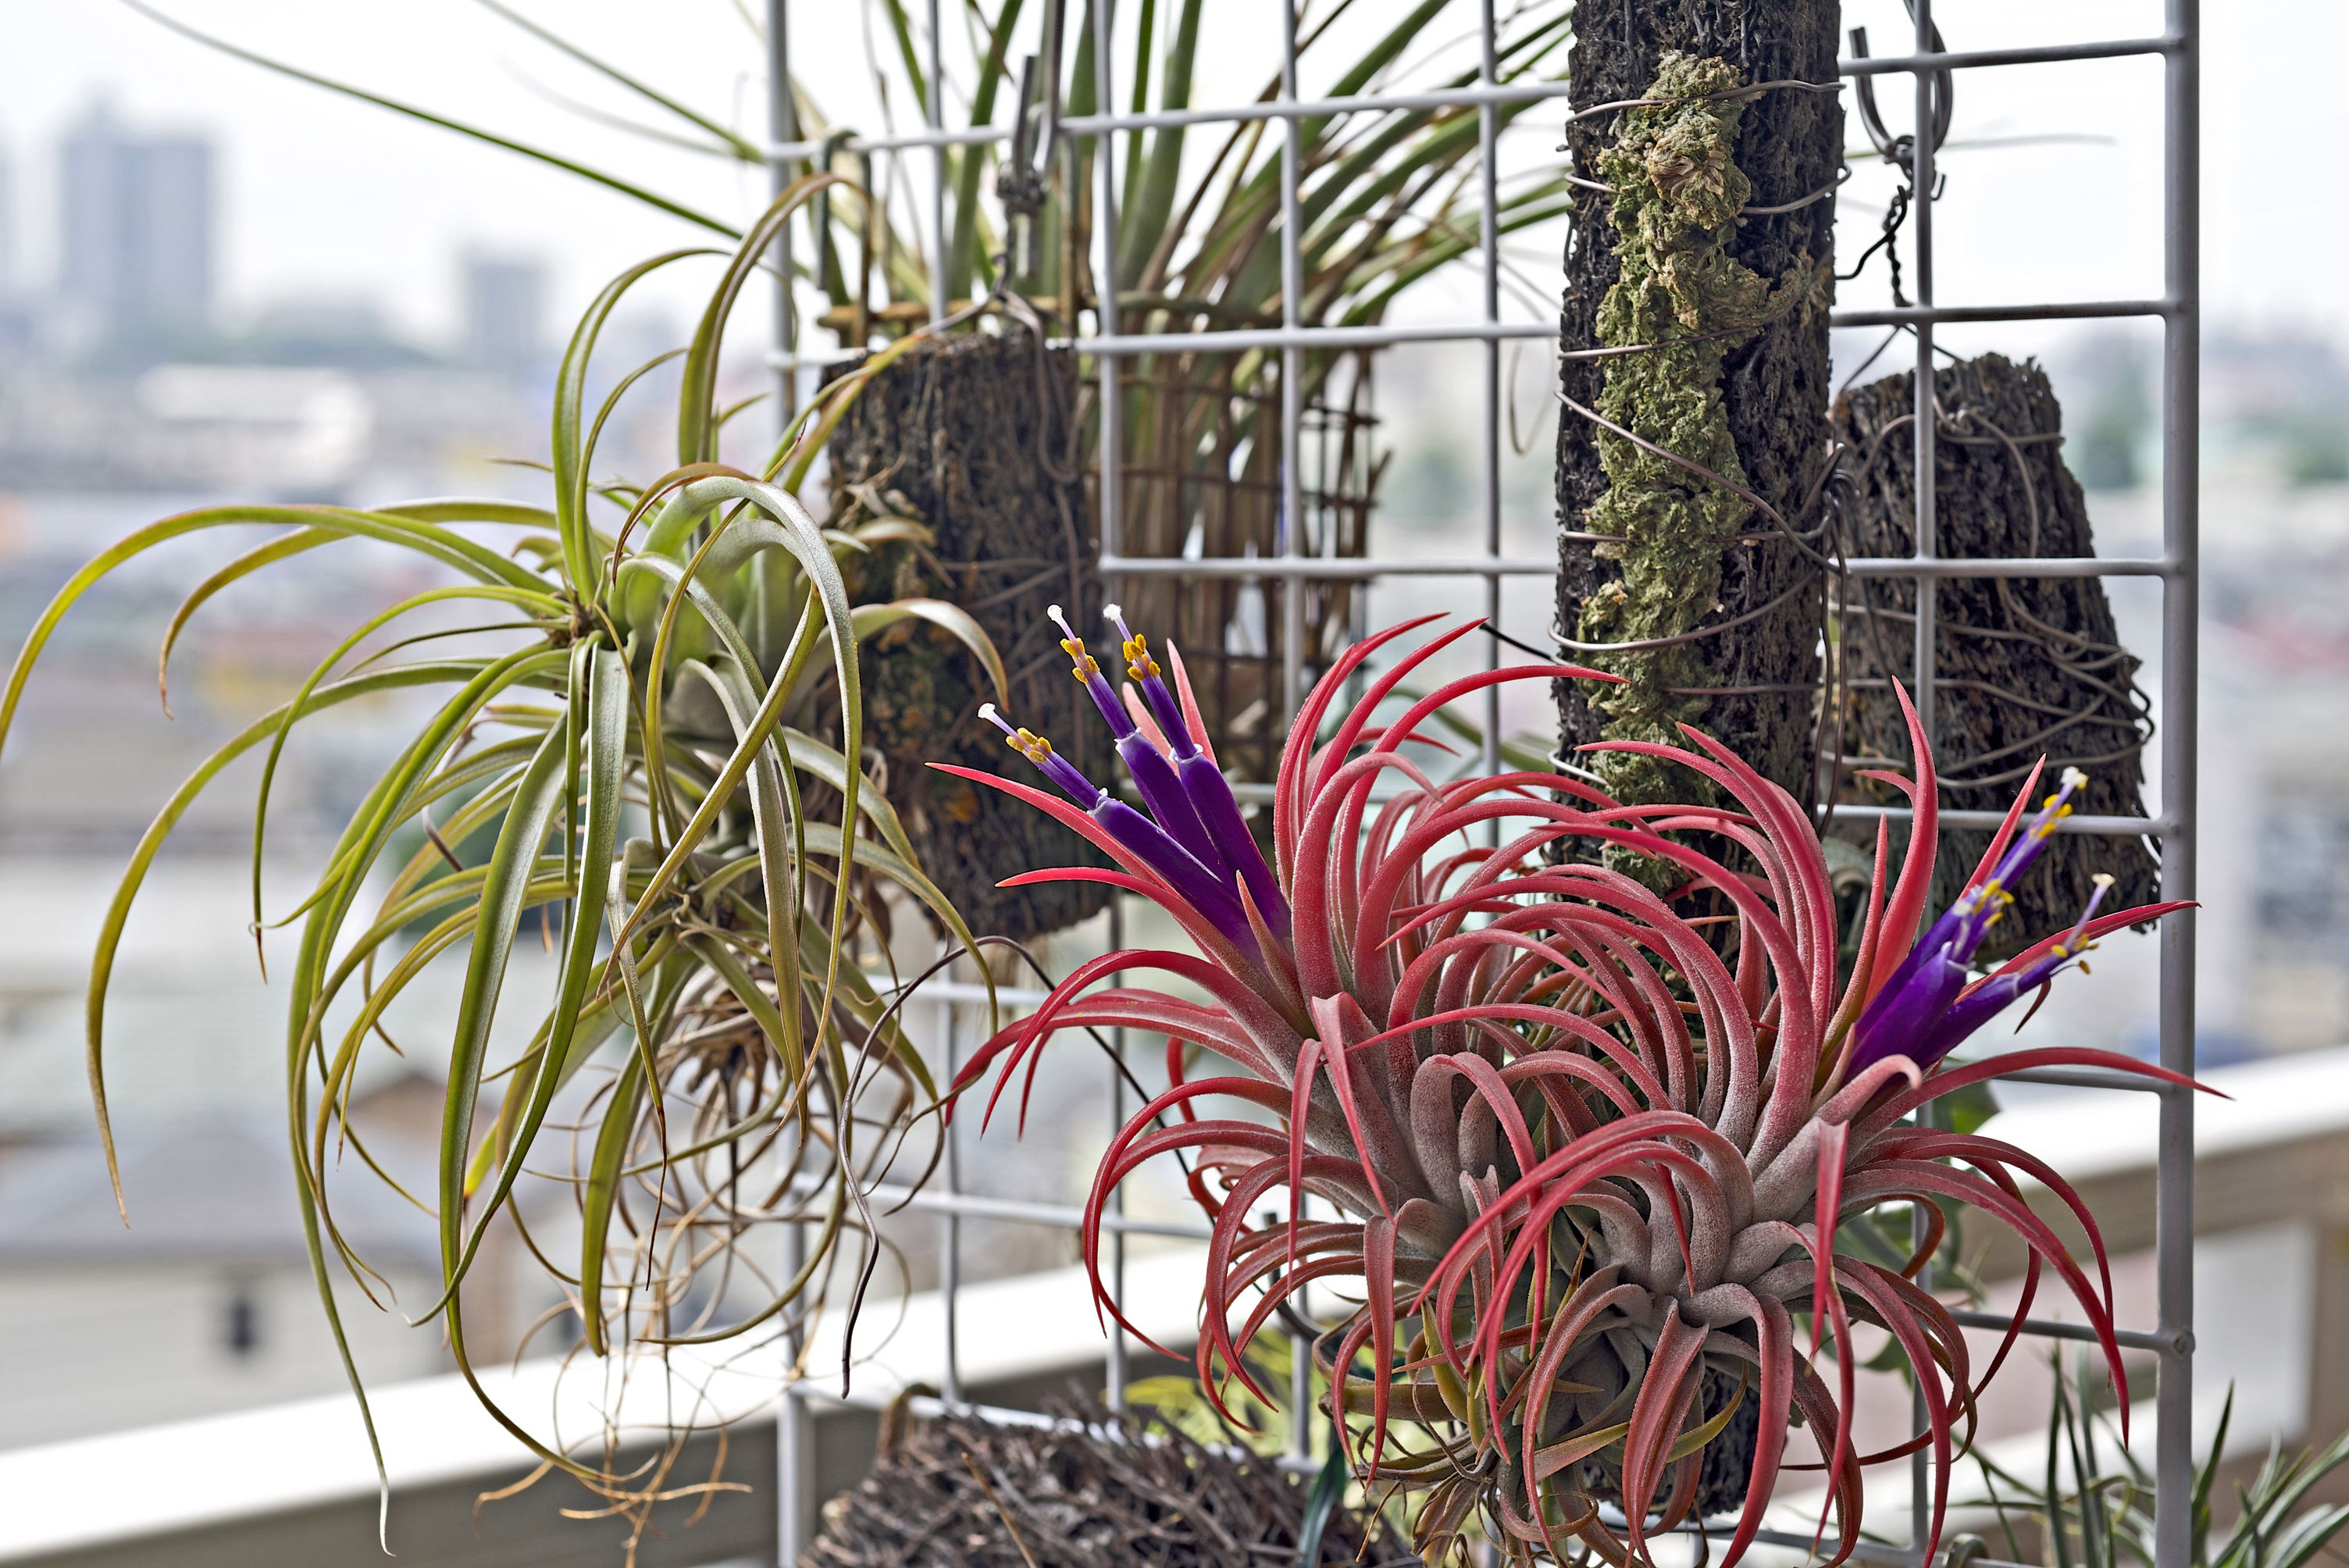 'Maxima' air plant with green and red leaves and purple blooms